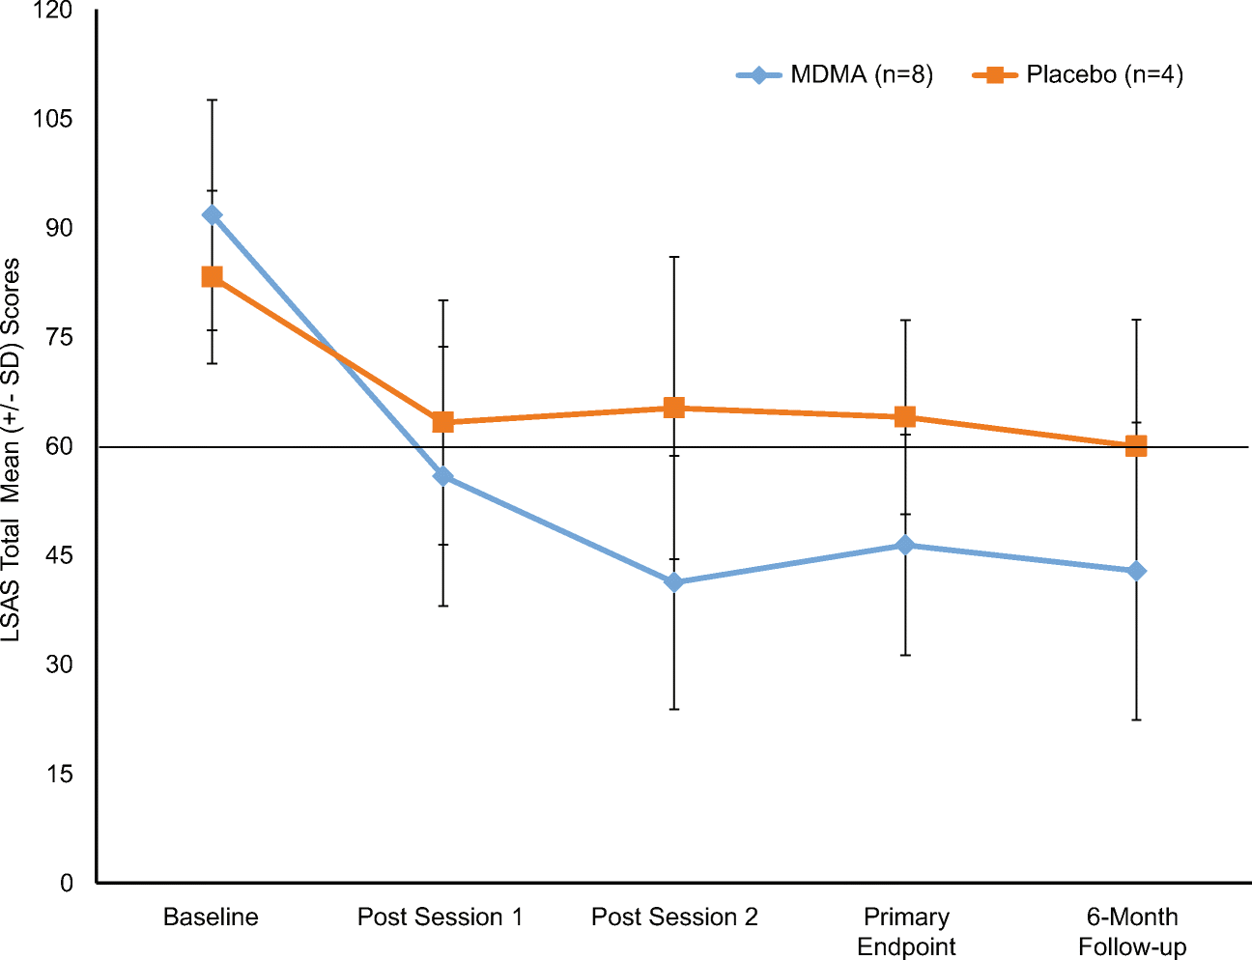 The comparison in LSAS scores between MDMA and placebo groups up to six-month follow up(Credit: Danforth, A.L., Grob, C.S., Struble, C. et al. Psychopharmacology 2018 - CC BY-NC-ND 4.0)